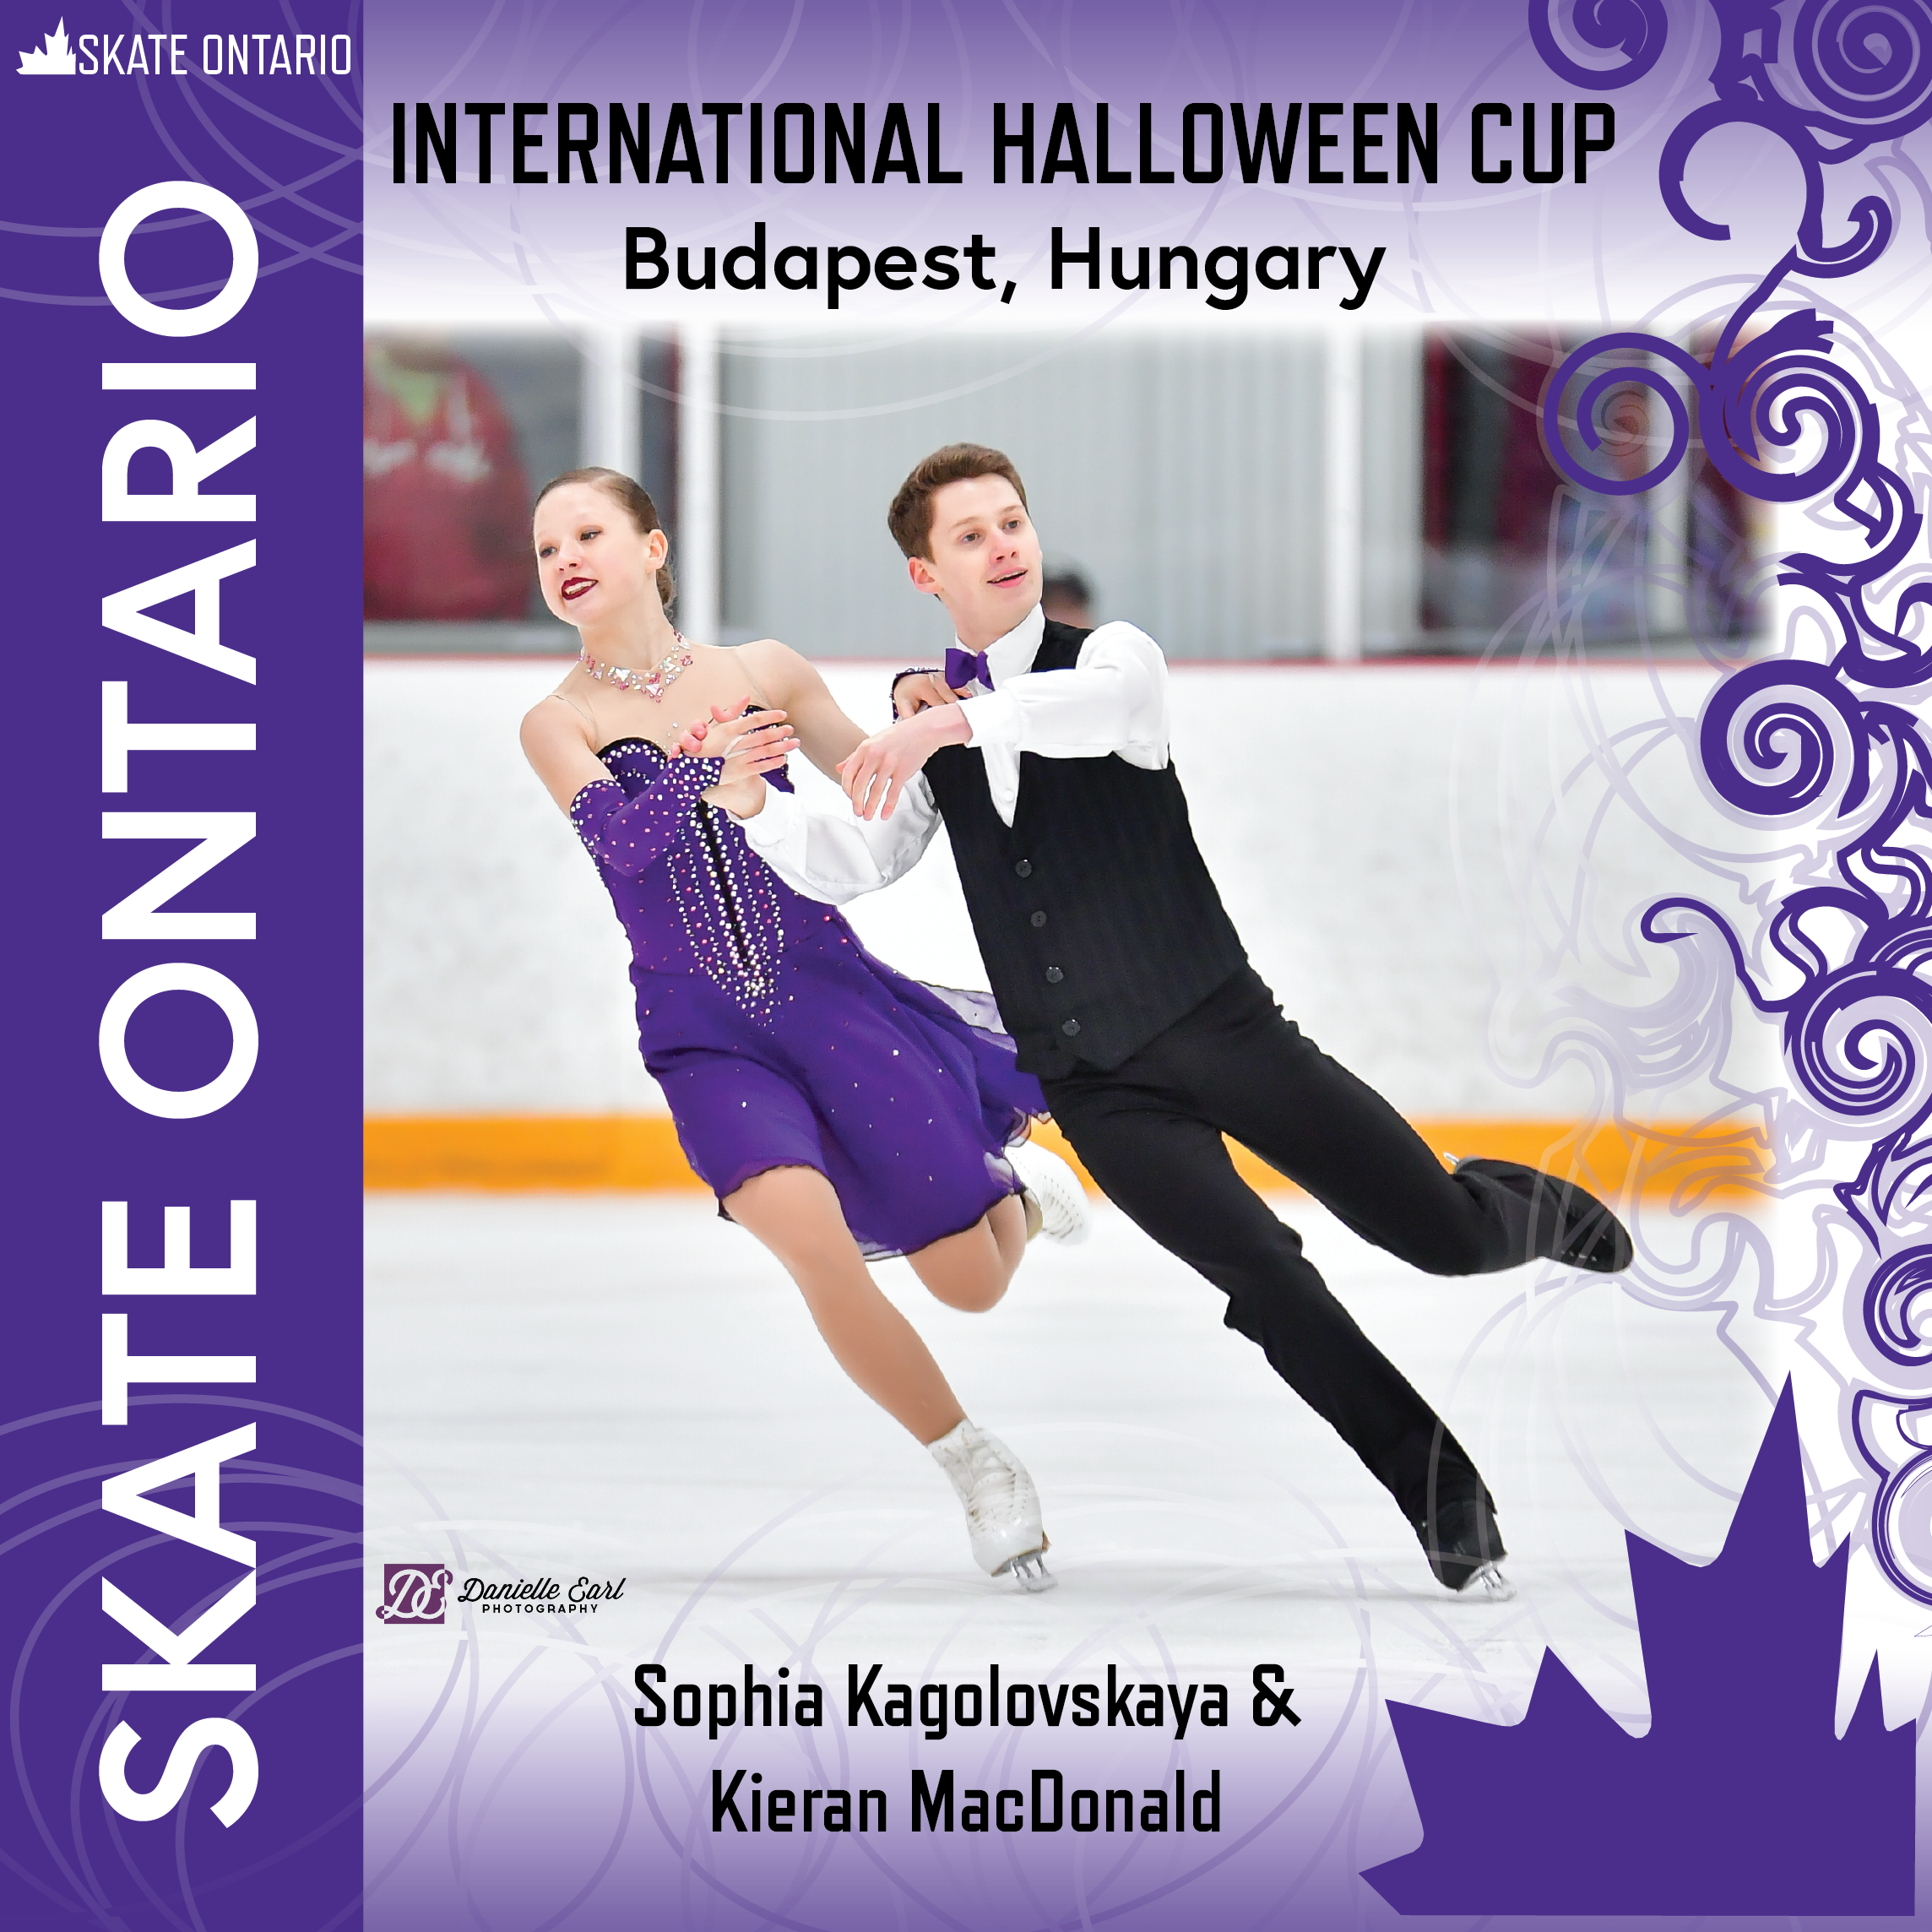 Halloween Cup 2020 Budapest International Halloween Cup in Hungary   Skate Ontario